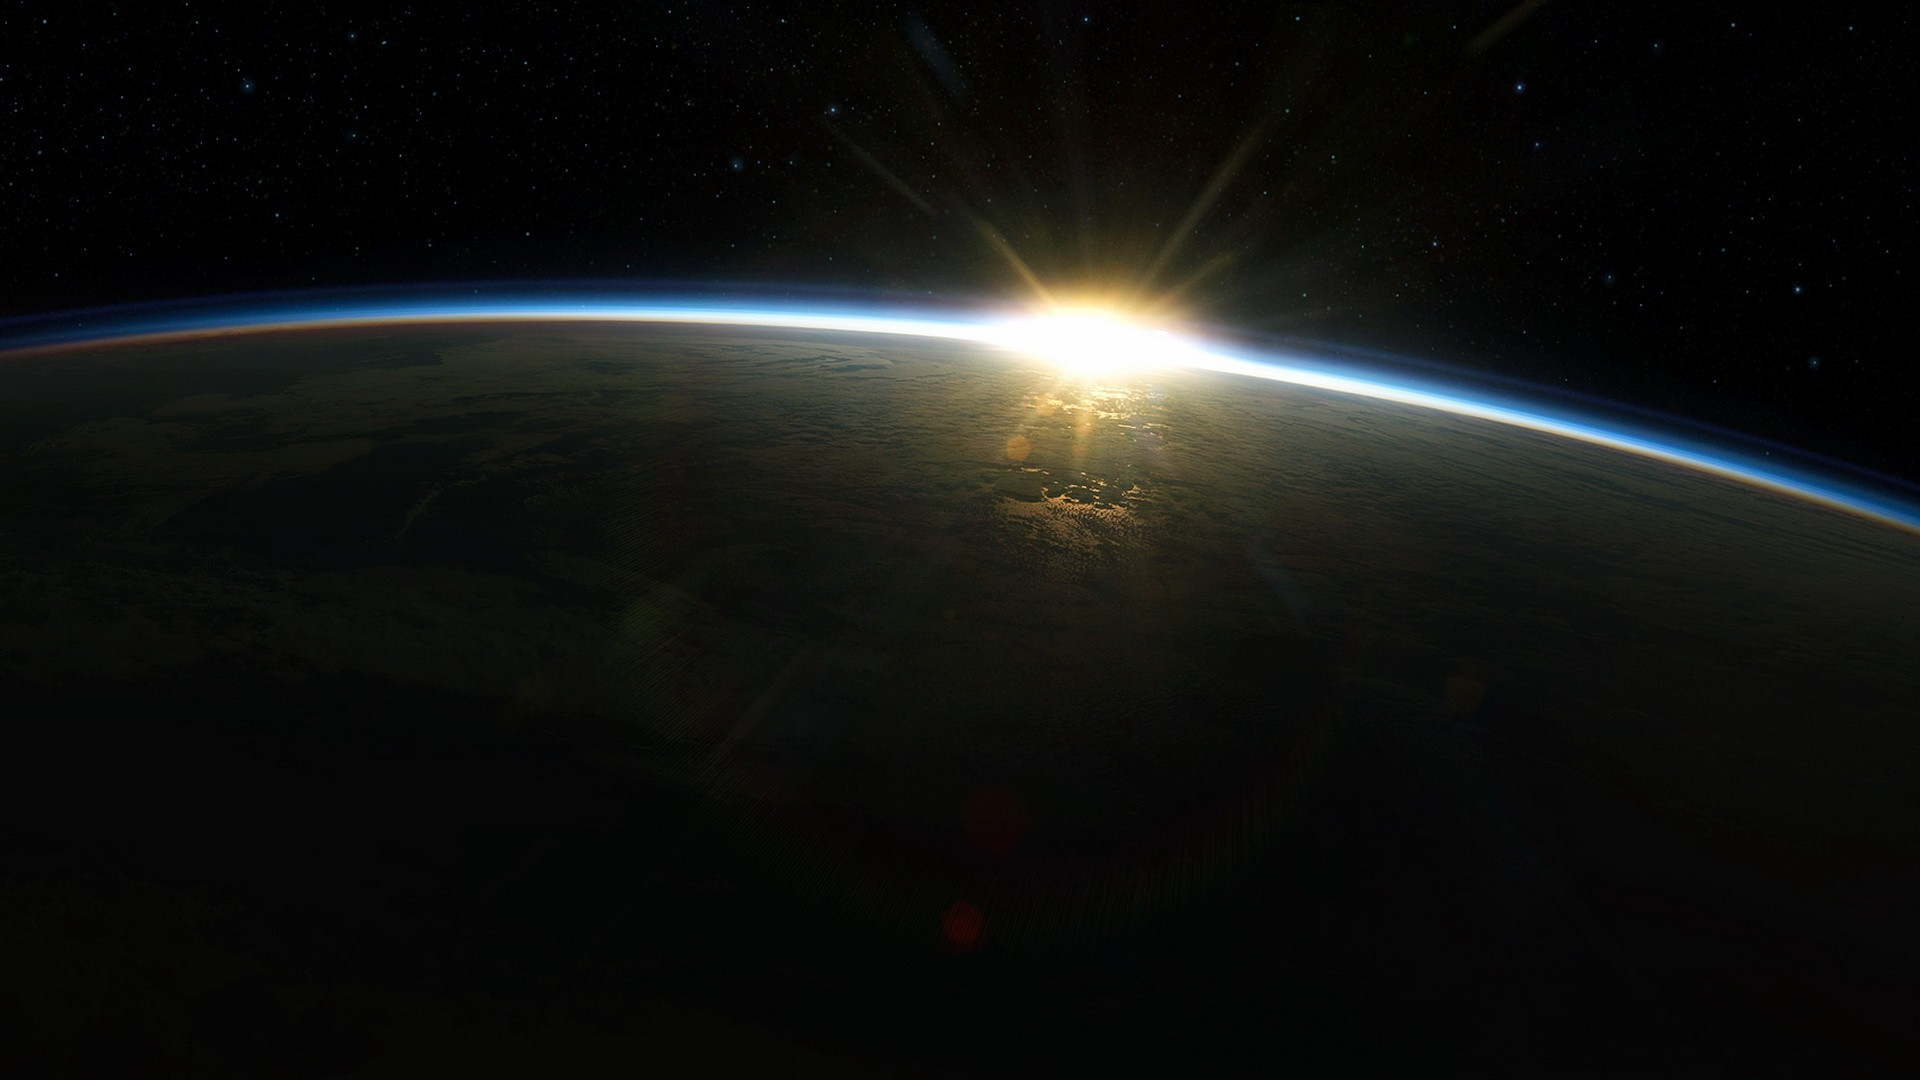 sunrise from space hd - photo #24